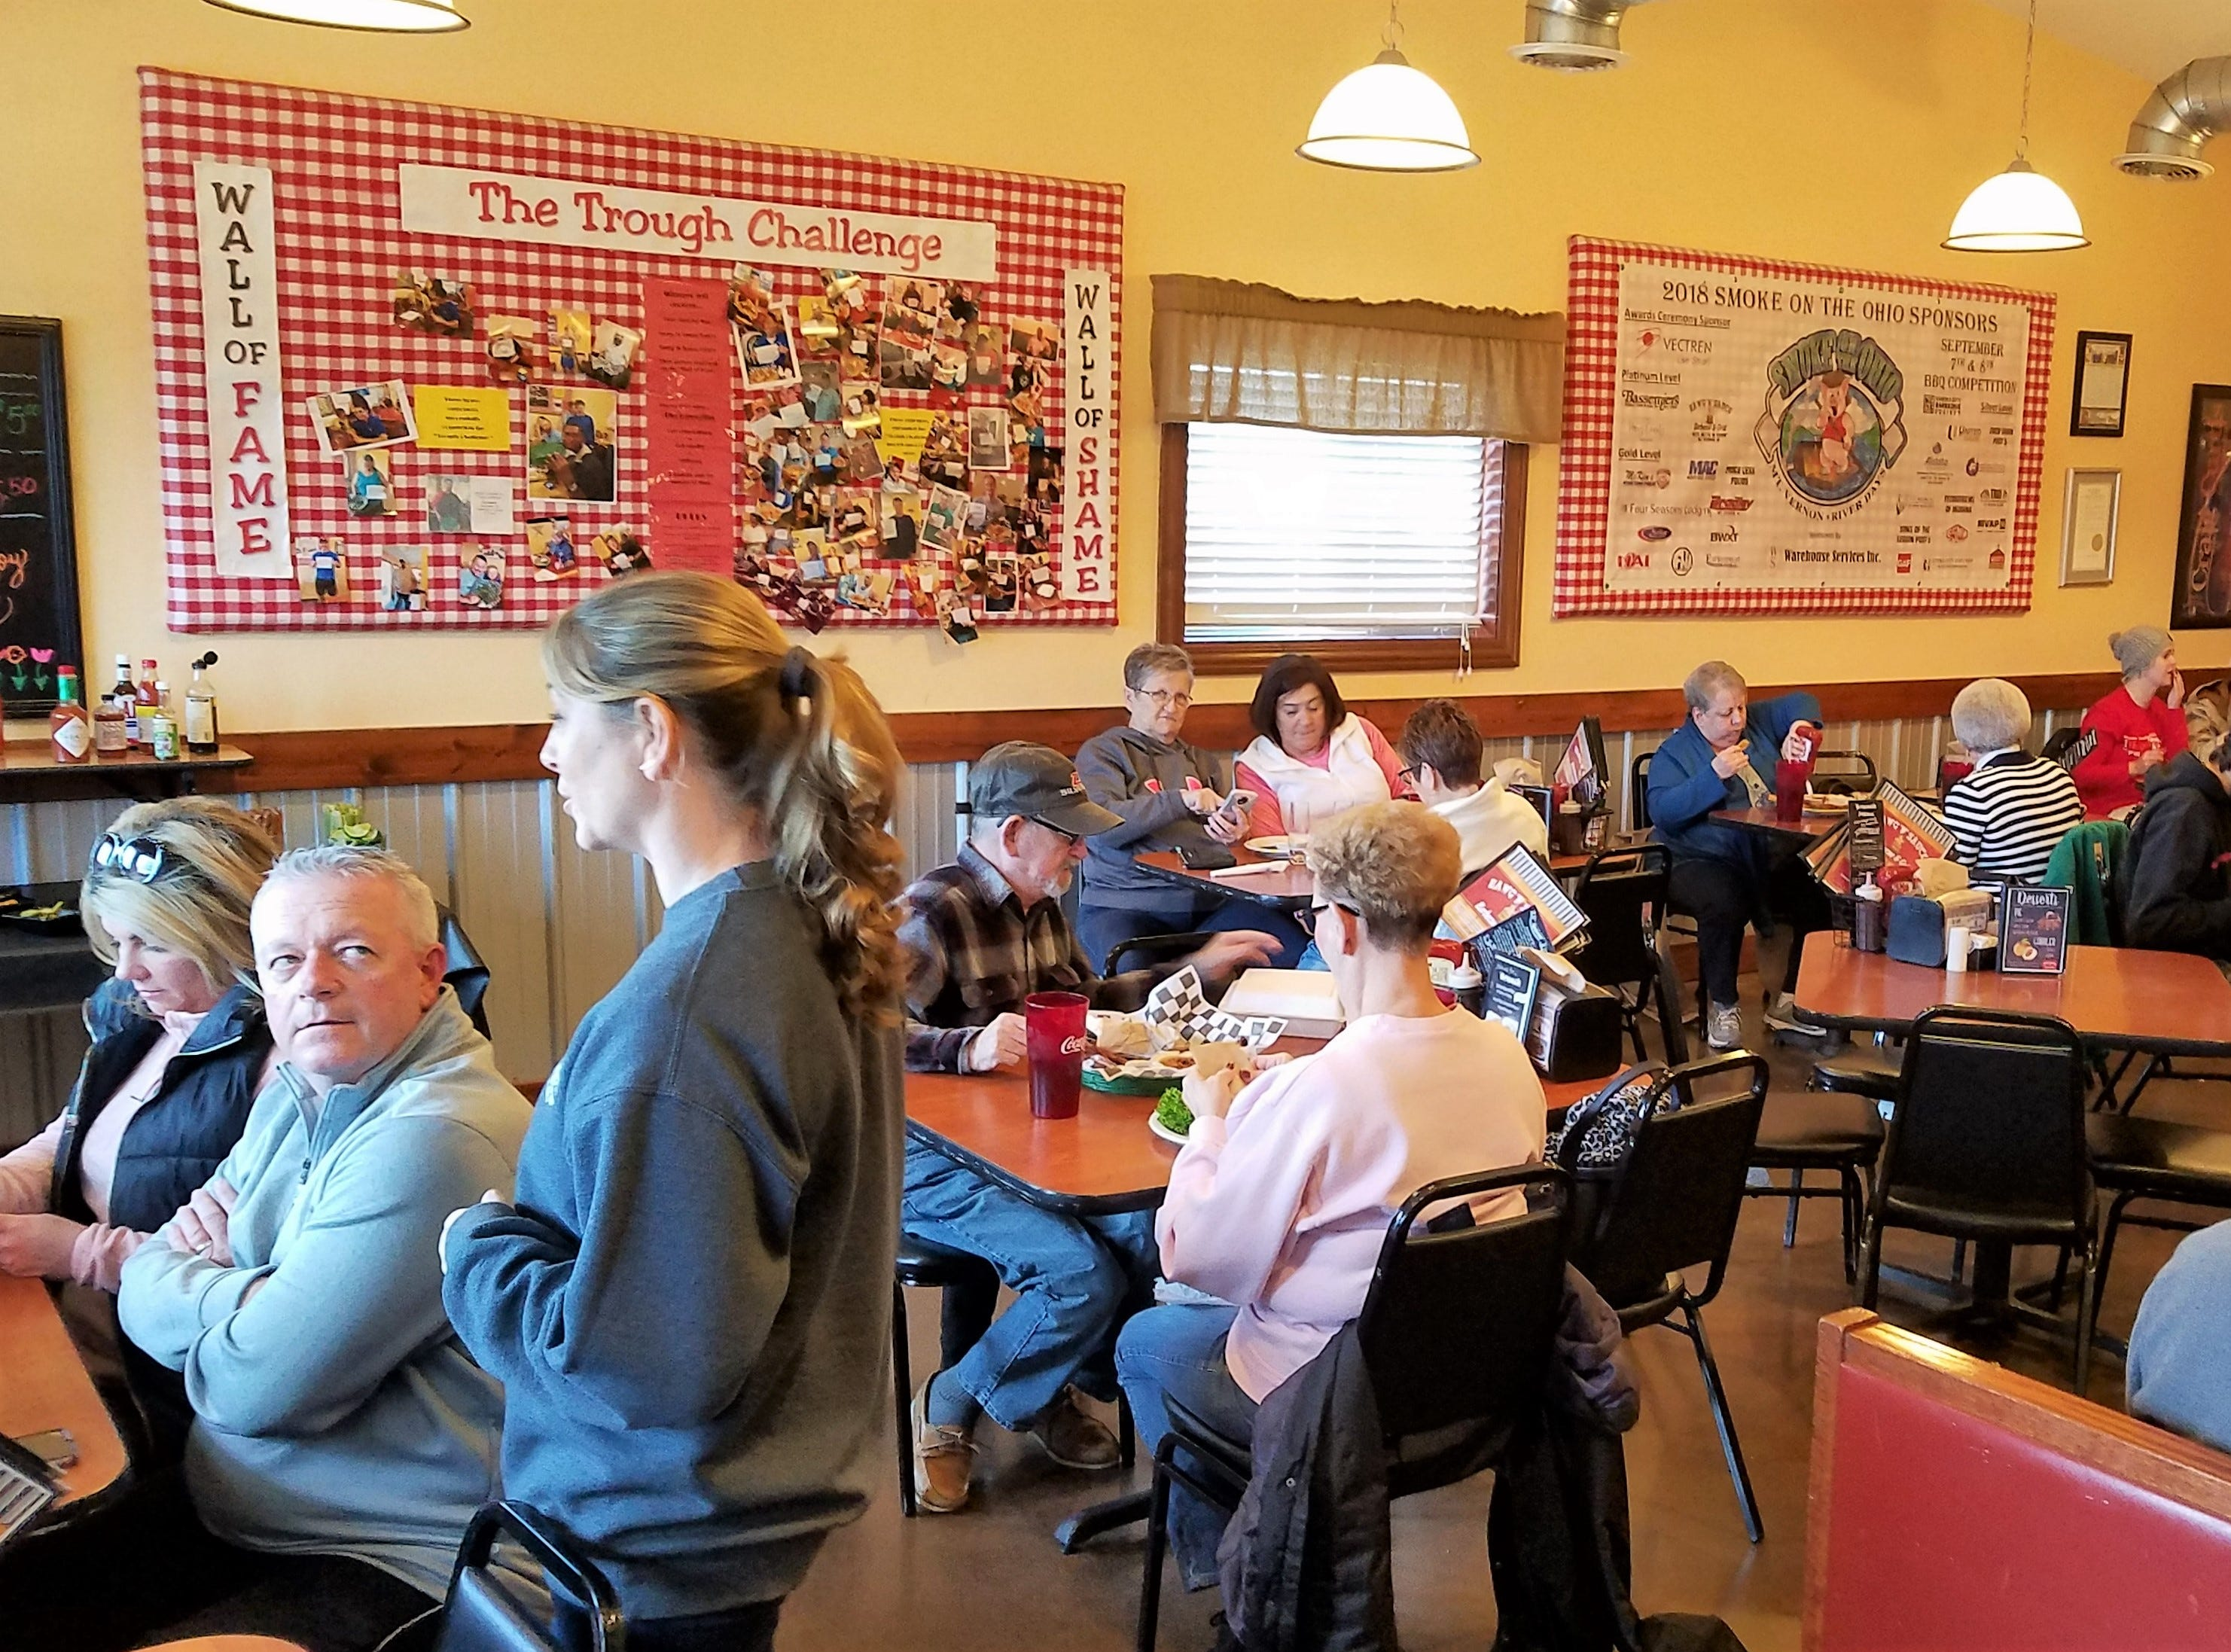 Hawg N Sauce is always a busy place, but now Saturday lunch is even busier with customers enjoying the new brunch menu.